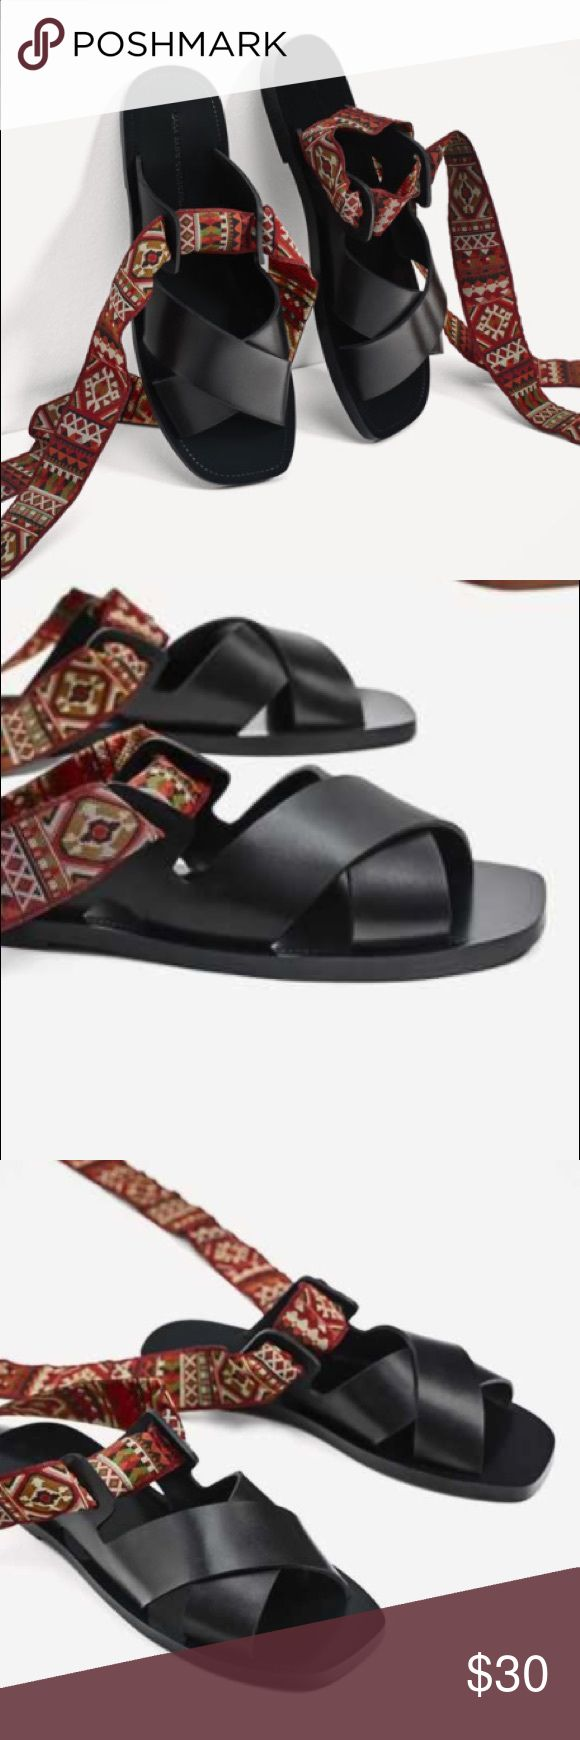 Zara Black Leather Sandals with Ribbon Tie sz 37 Zara Black Leather Sandals with Ribbon Tie sz 37 Why you need this: Multi Print is right on trend for Spring '18. Versatile straps allow you to tie up the leg, around the ankle, or create whatever style you like! Zara Shoes Sandals